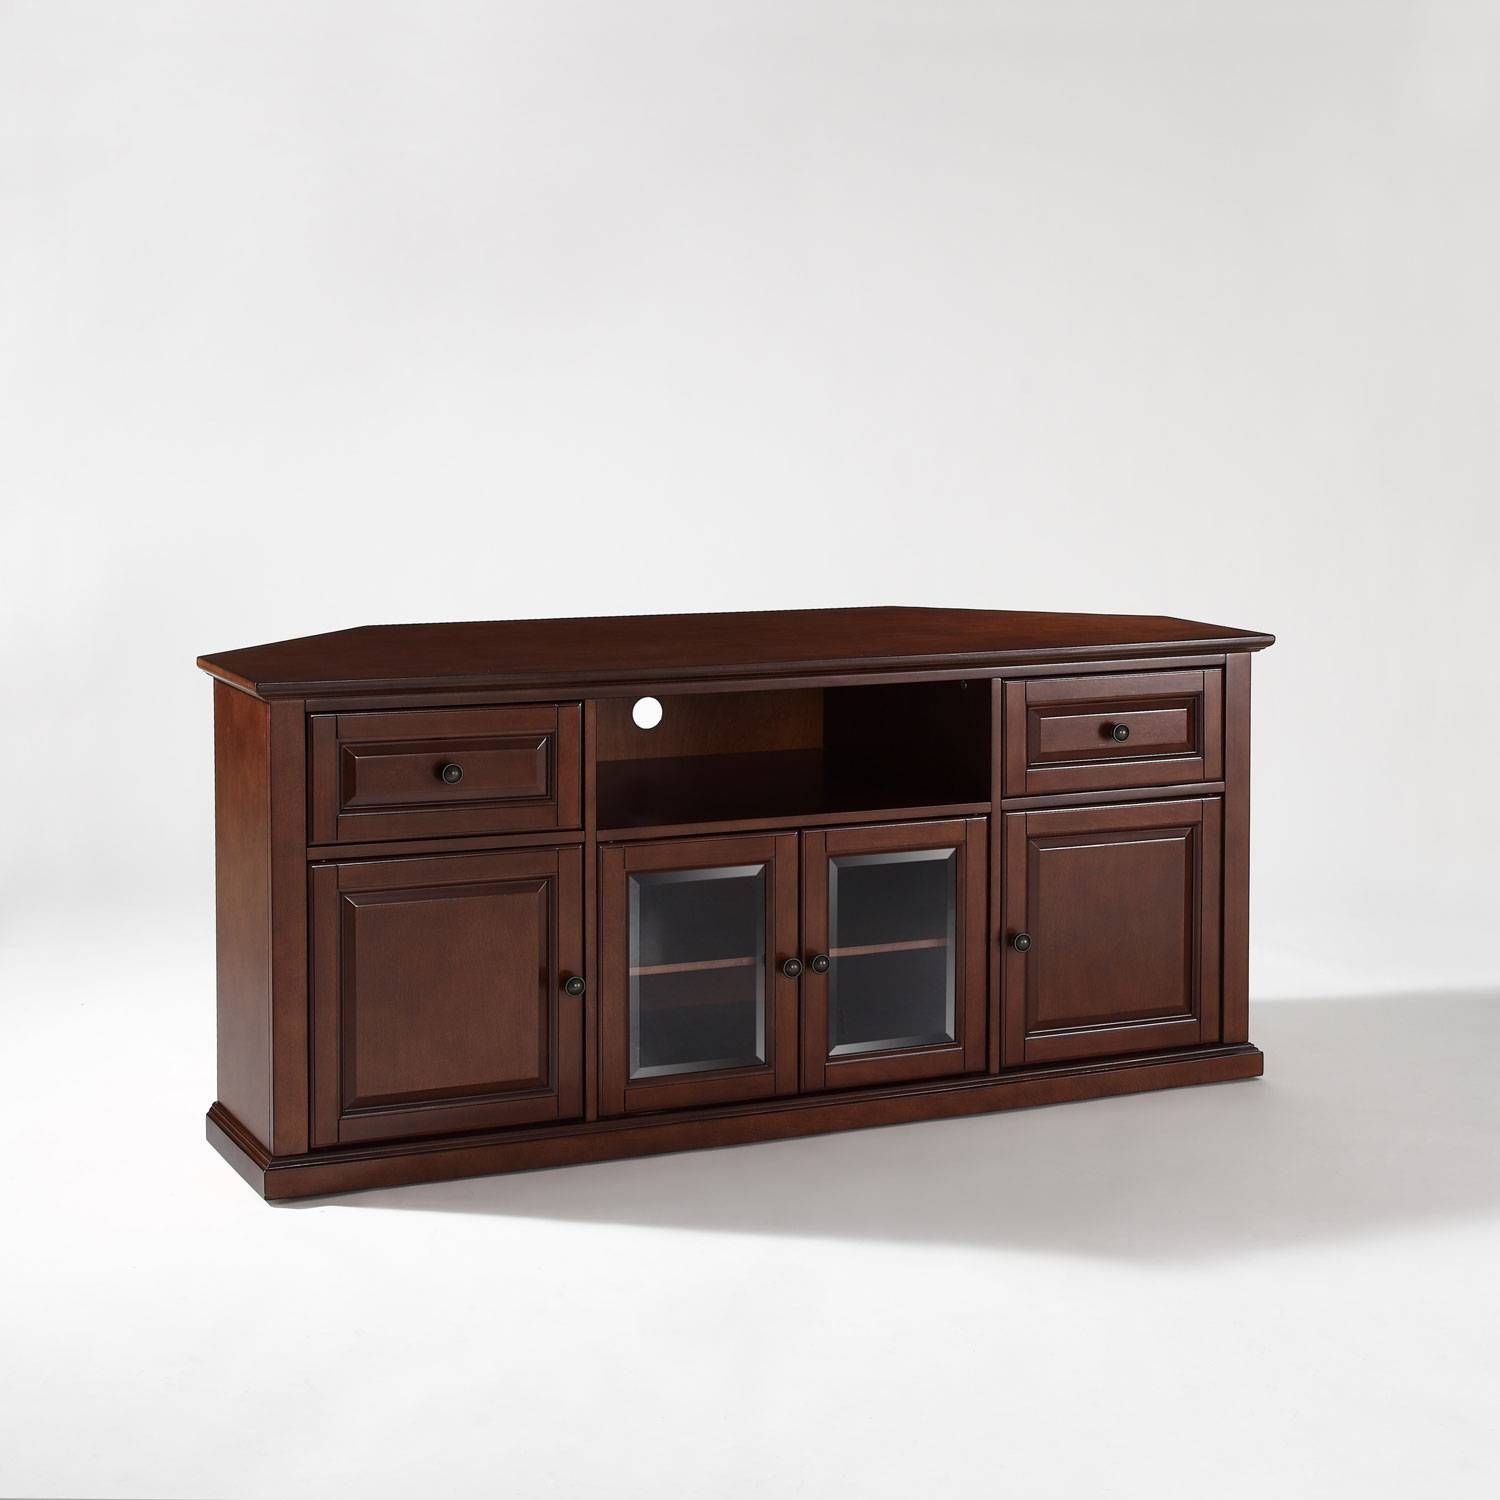 Corner Tv Cabinets Tv Stands And Cabinets | Bellacor for Corner Tv Cabinets (Image 6 of 15)